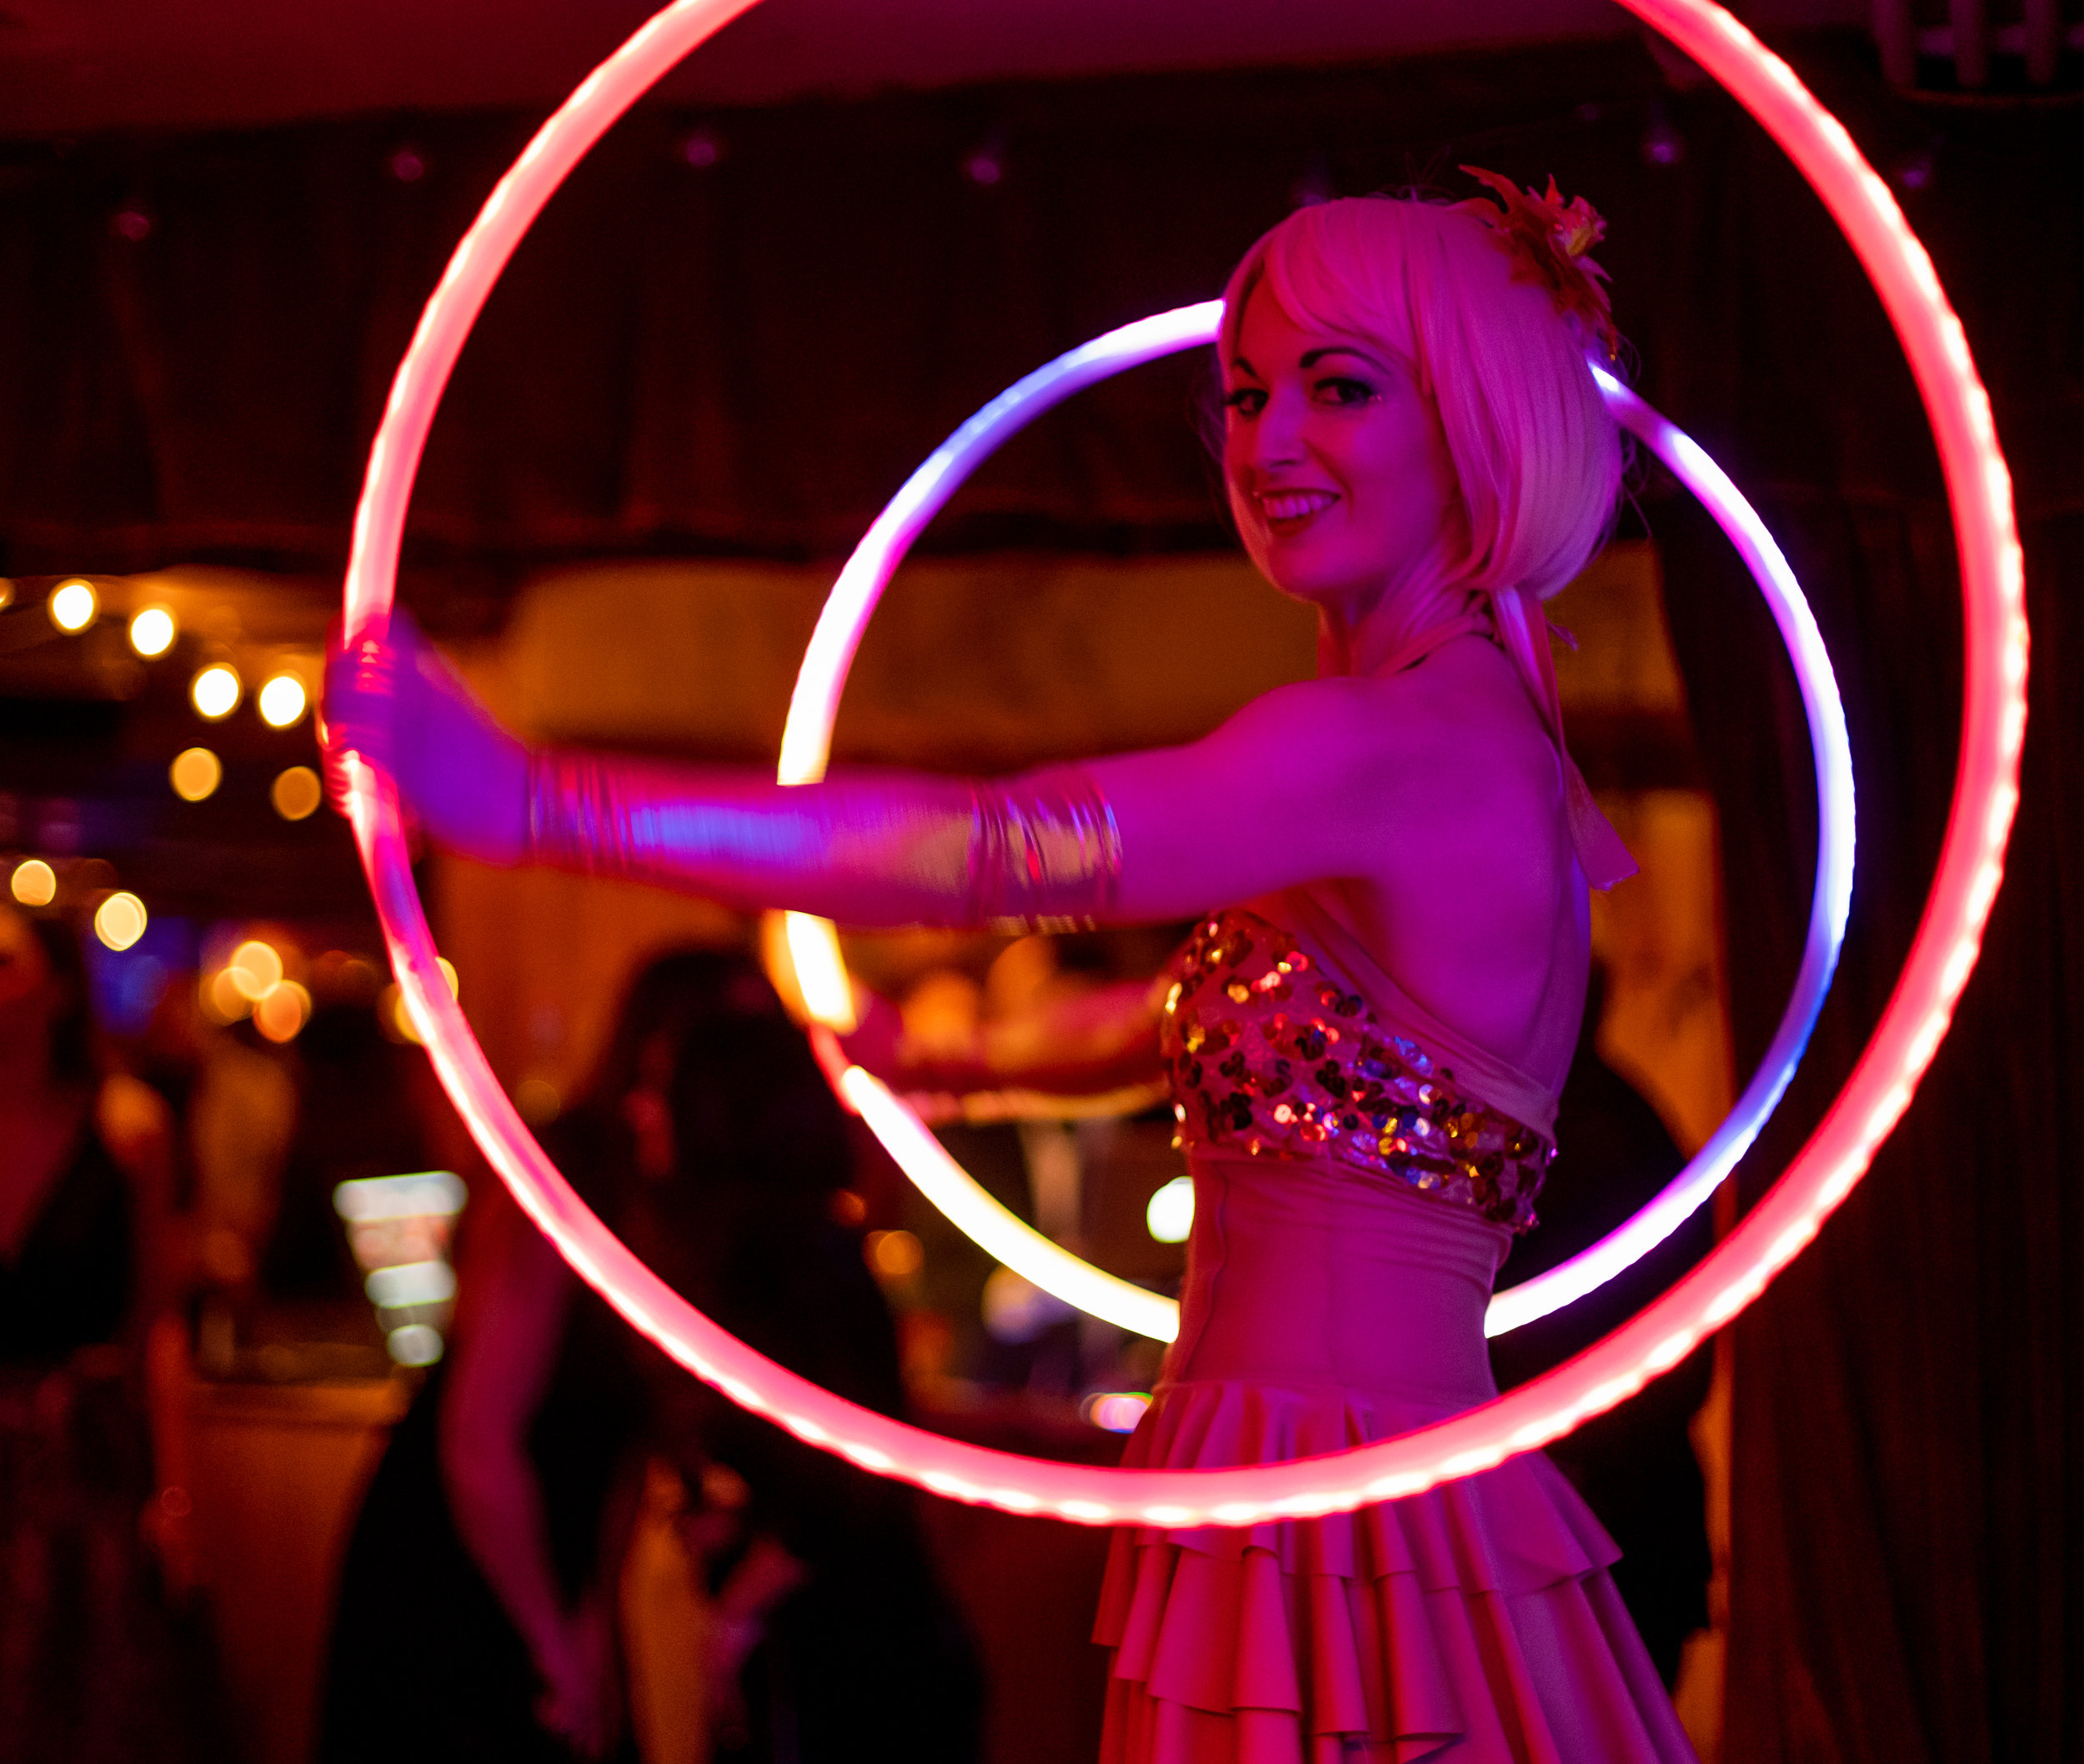 Glow Artists - Glow performers add a little extra shine to any event! They're a fabulous way to add flashy flow art to nightlife experiences, high-tech functions, and holiday parties.Photo courtesy of Beren Jones